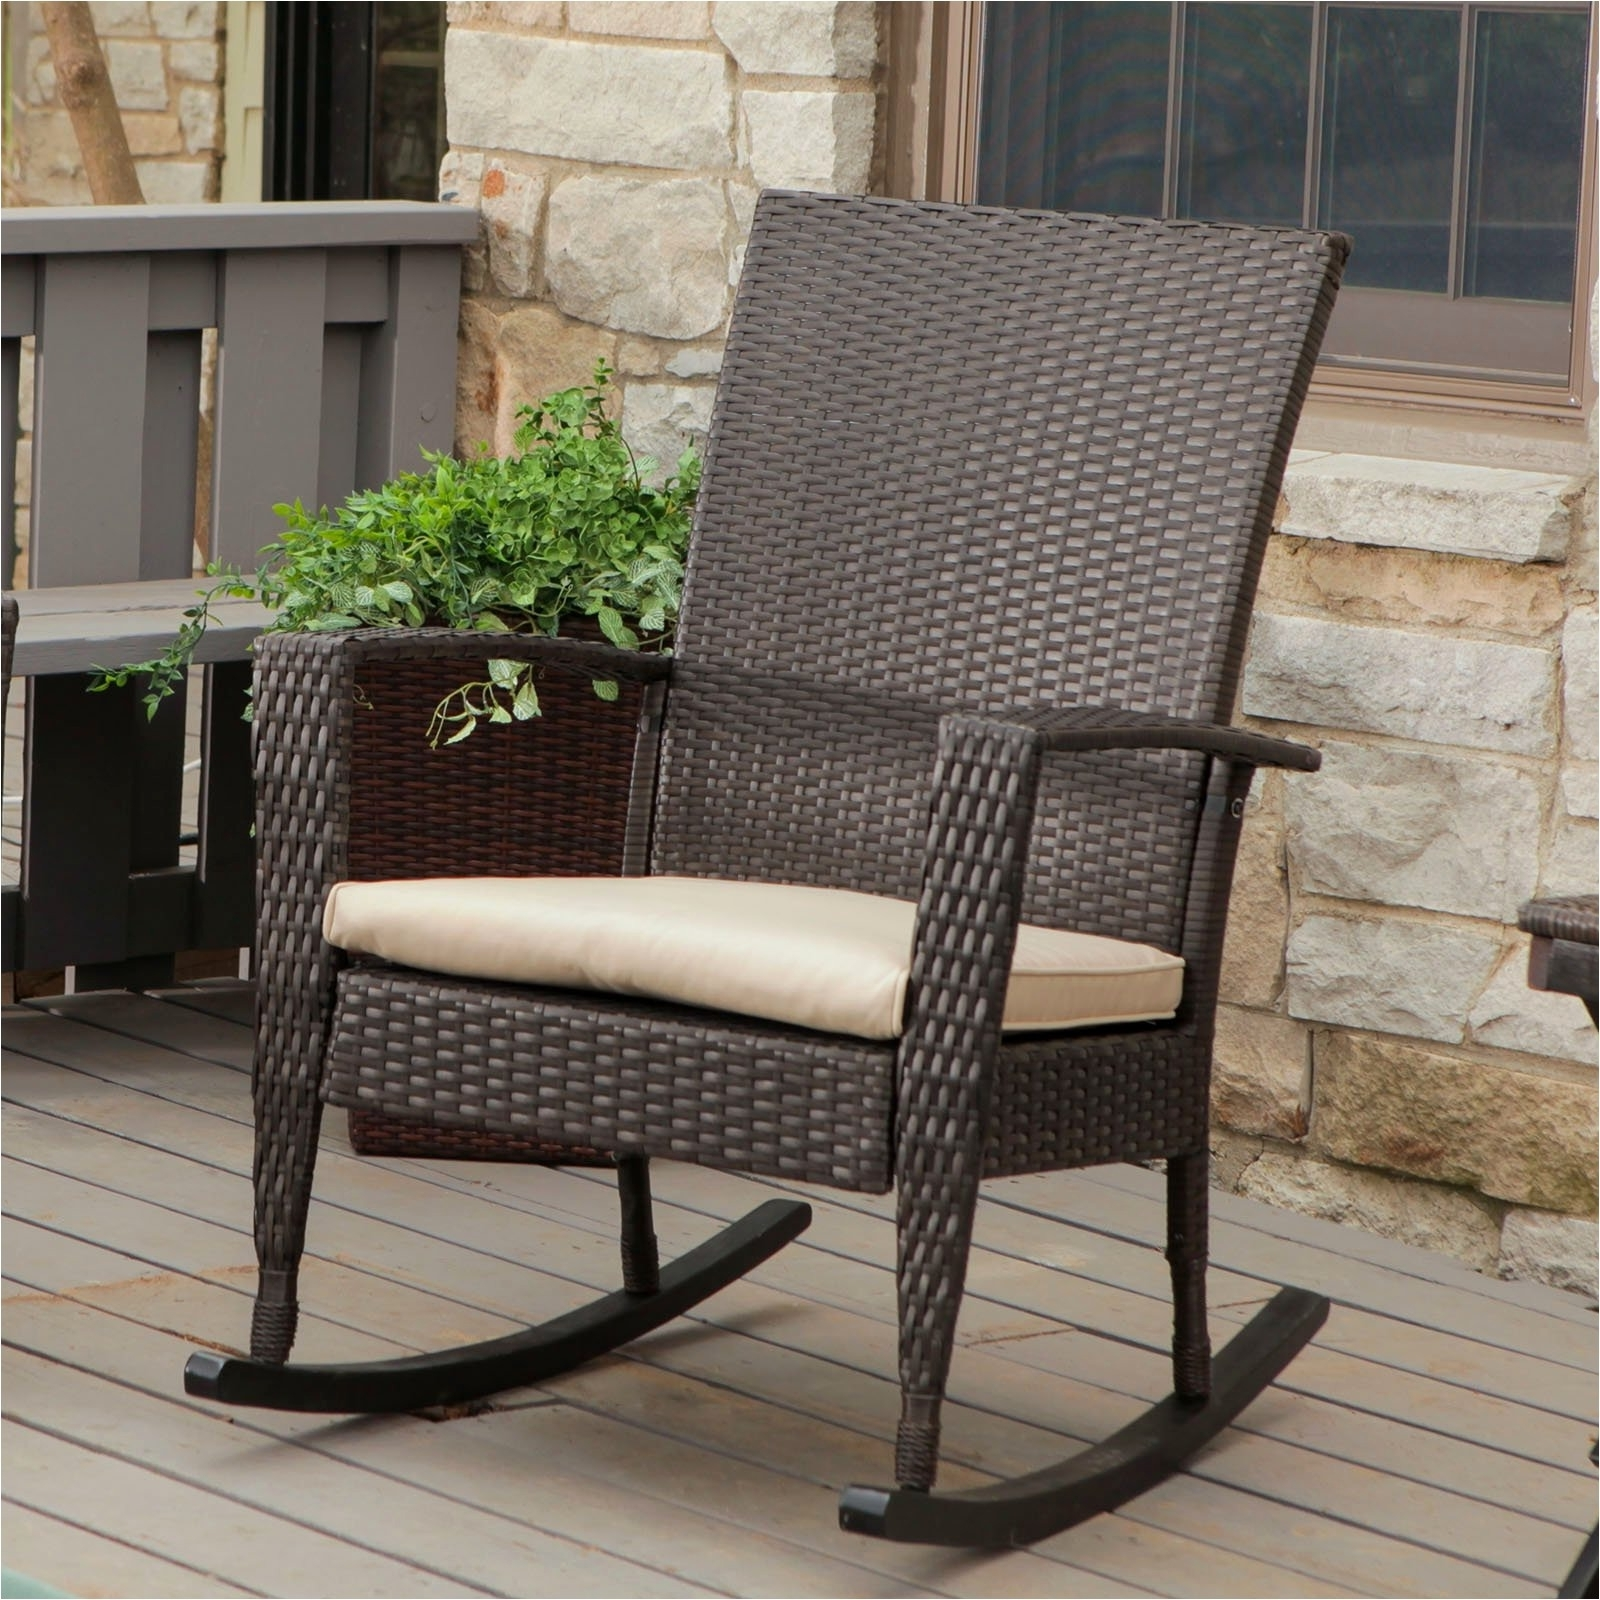 Most Popular Patio Rocking Chairs Sets Within Patio : Furniture Wicker Dining Set Outside Patio White Outdoor (View 8 of 20)